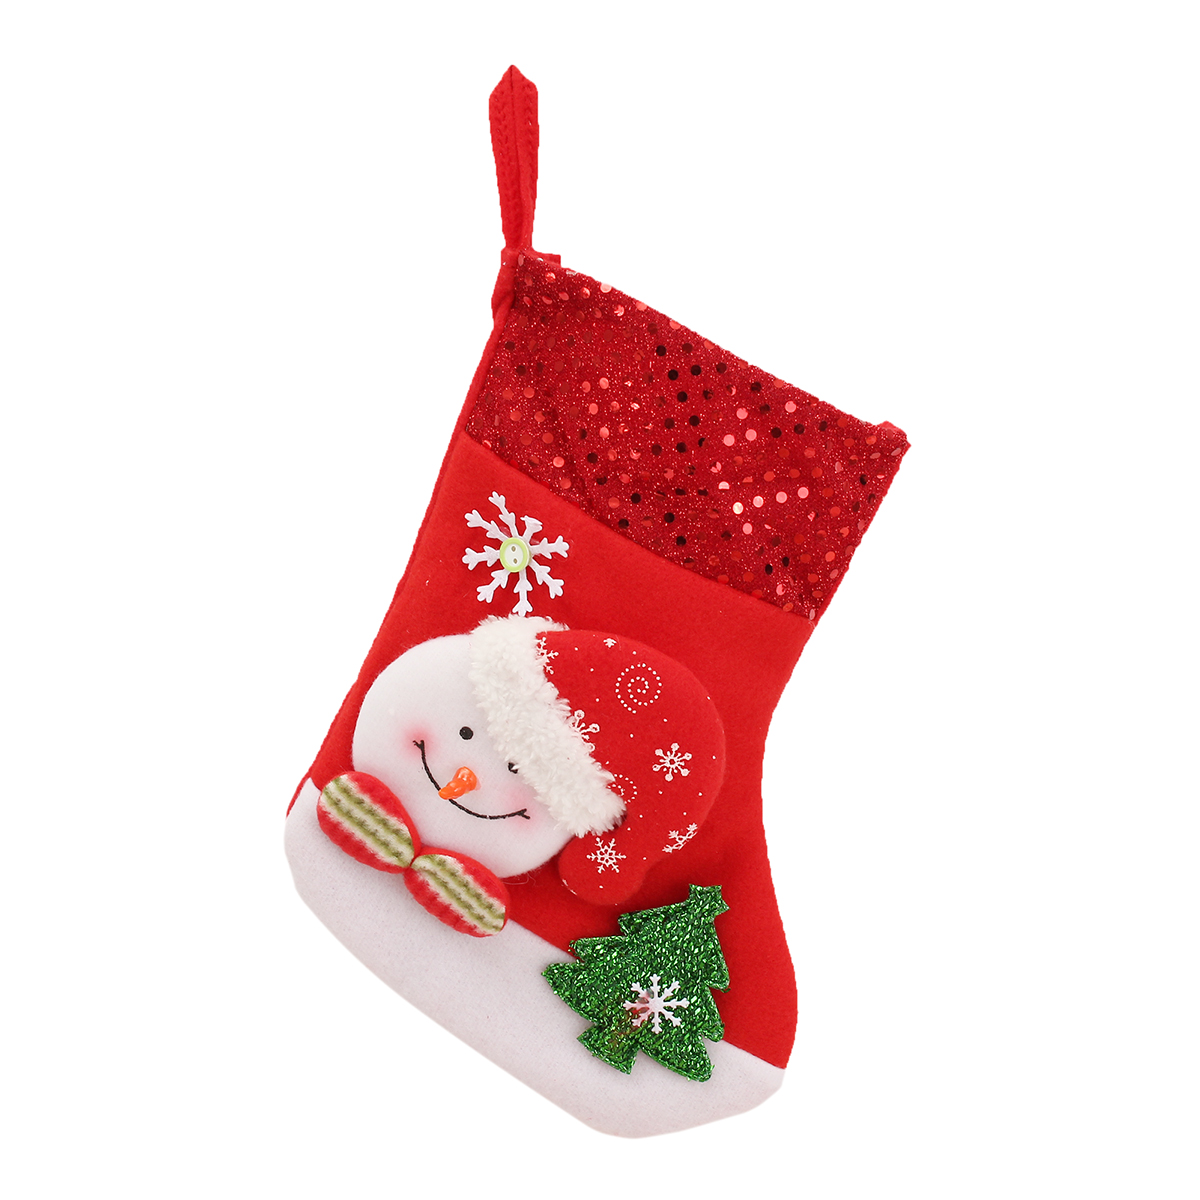 Christmas Gift Socks Bags Santa Claus Snowman Pattern Fleece Hanging Stockings For Tree Decoration